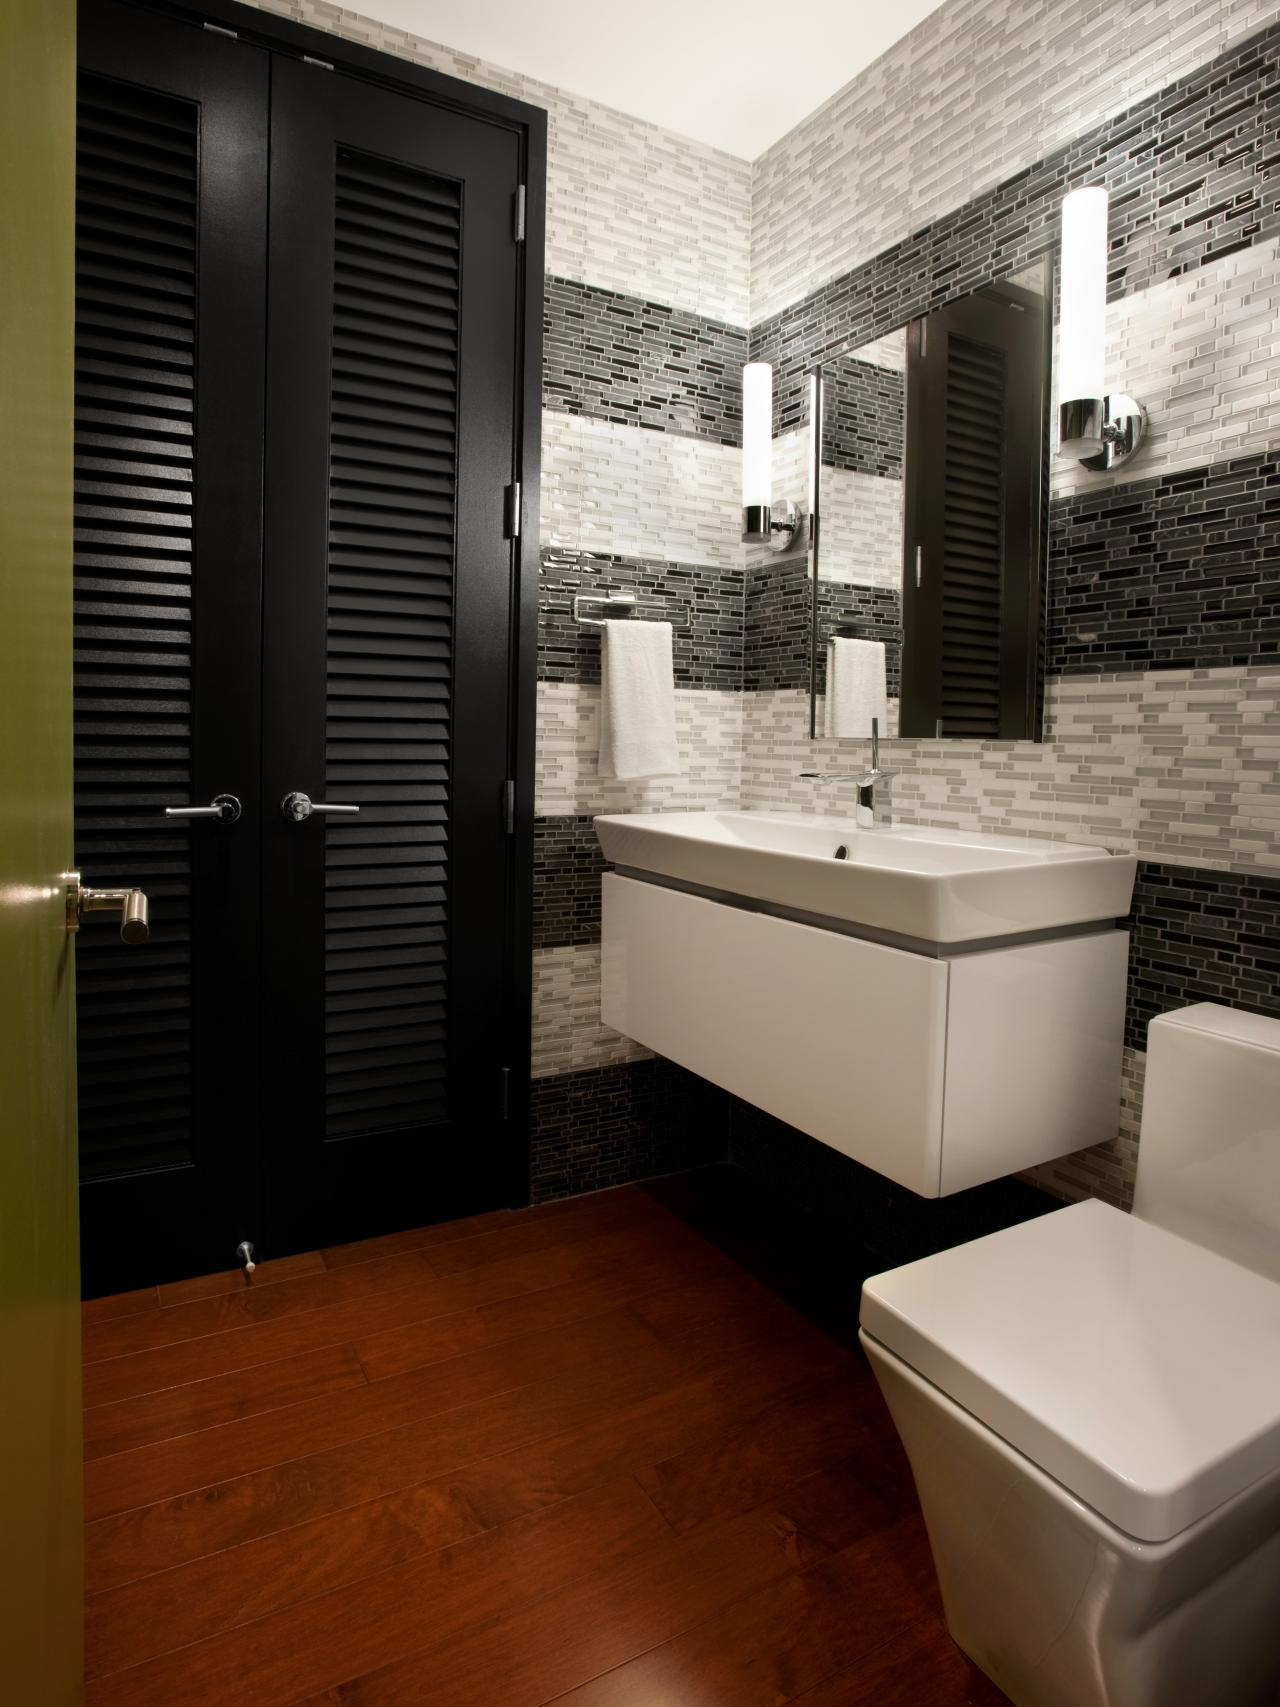 Bathroom Remodeling Ideas Photos modern bathroom design ideas: pictures & tips from hgtv | hgtv